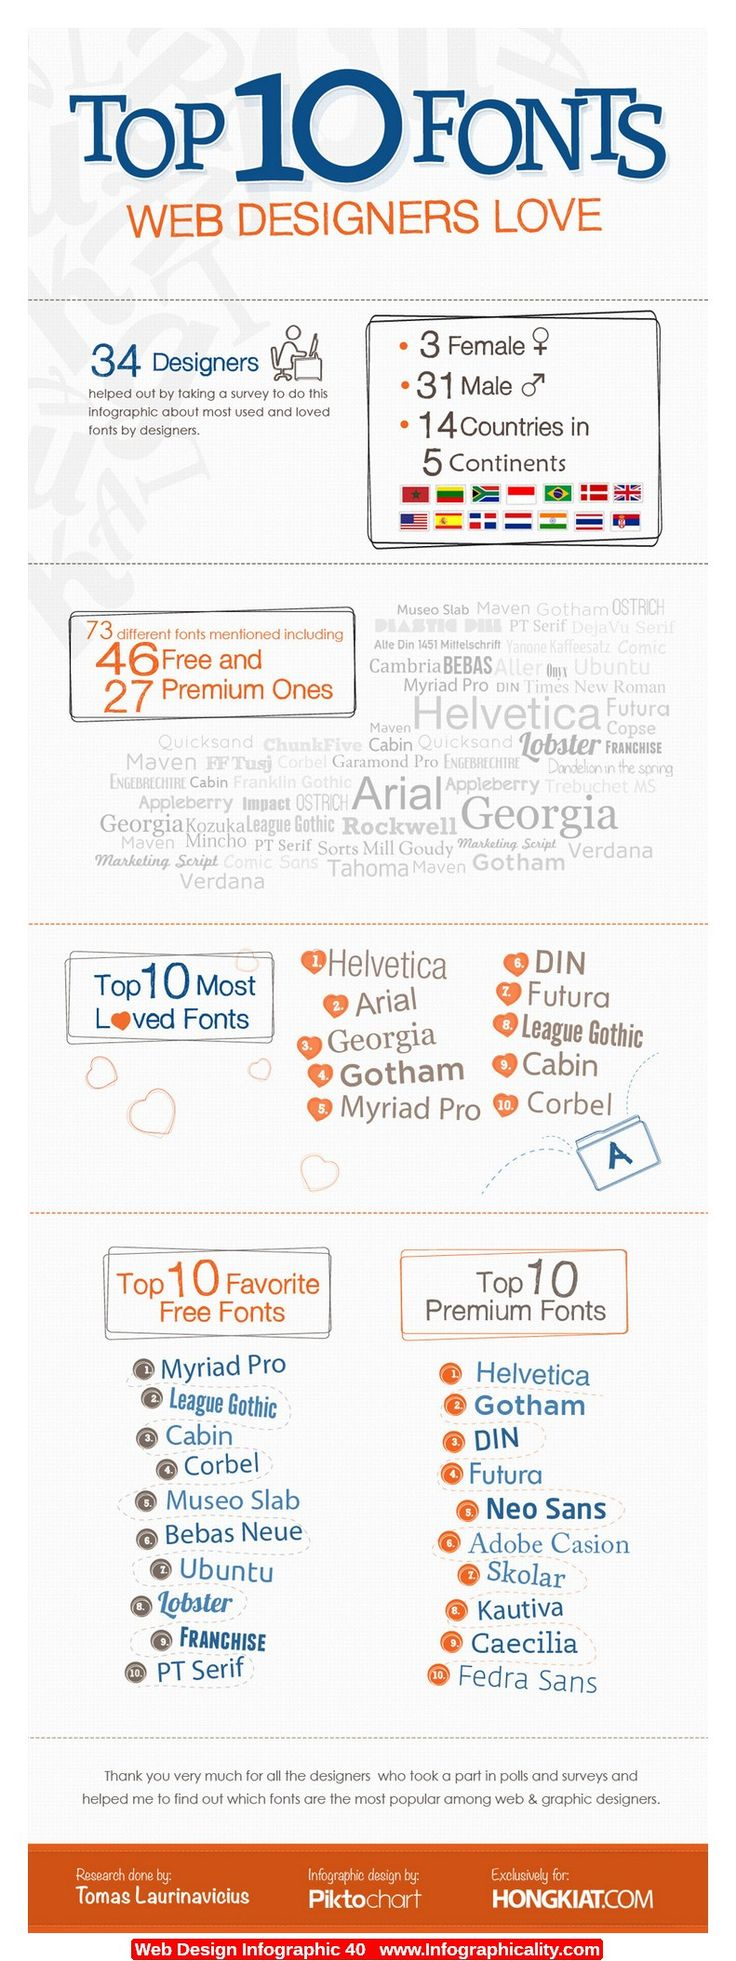 Web Design Infographic 40 - http://infographicality.com/web-design-infographic-40/